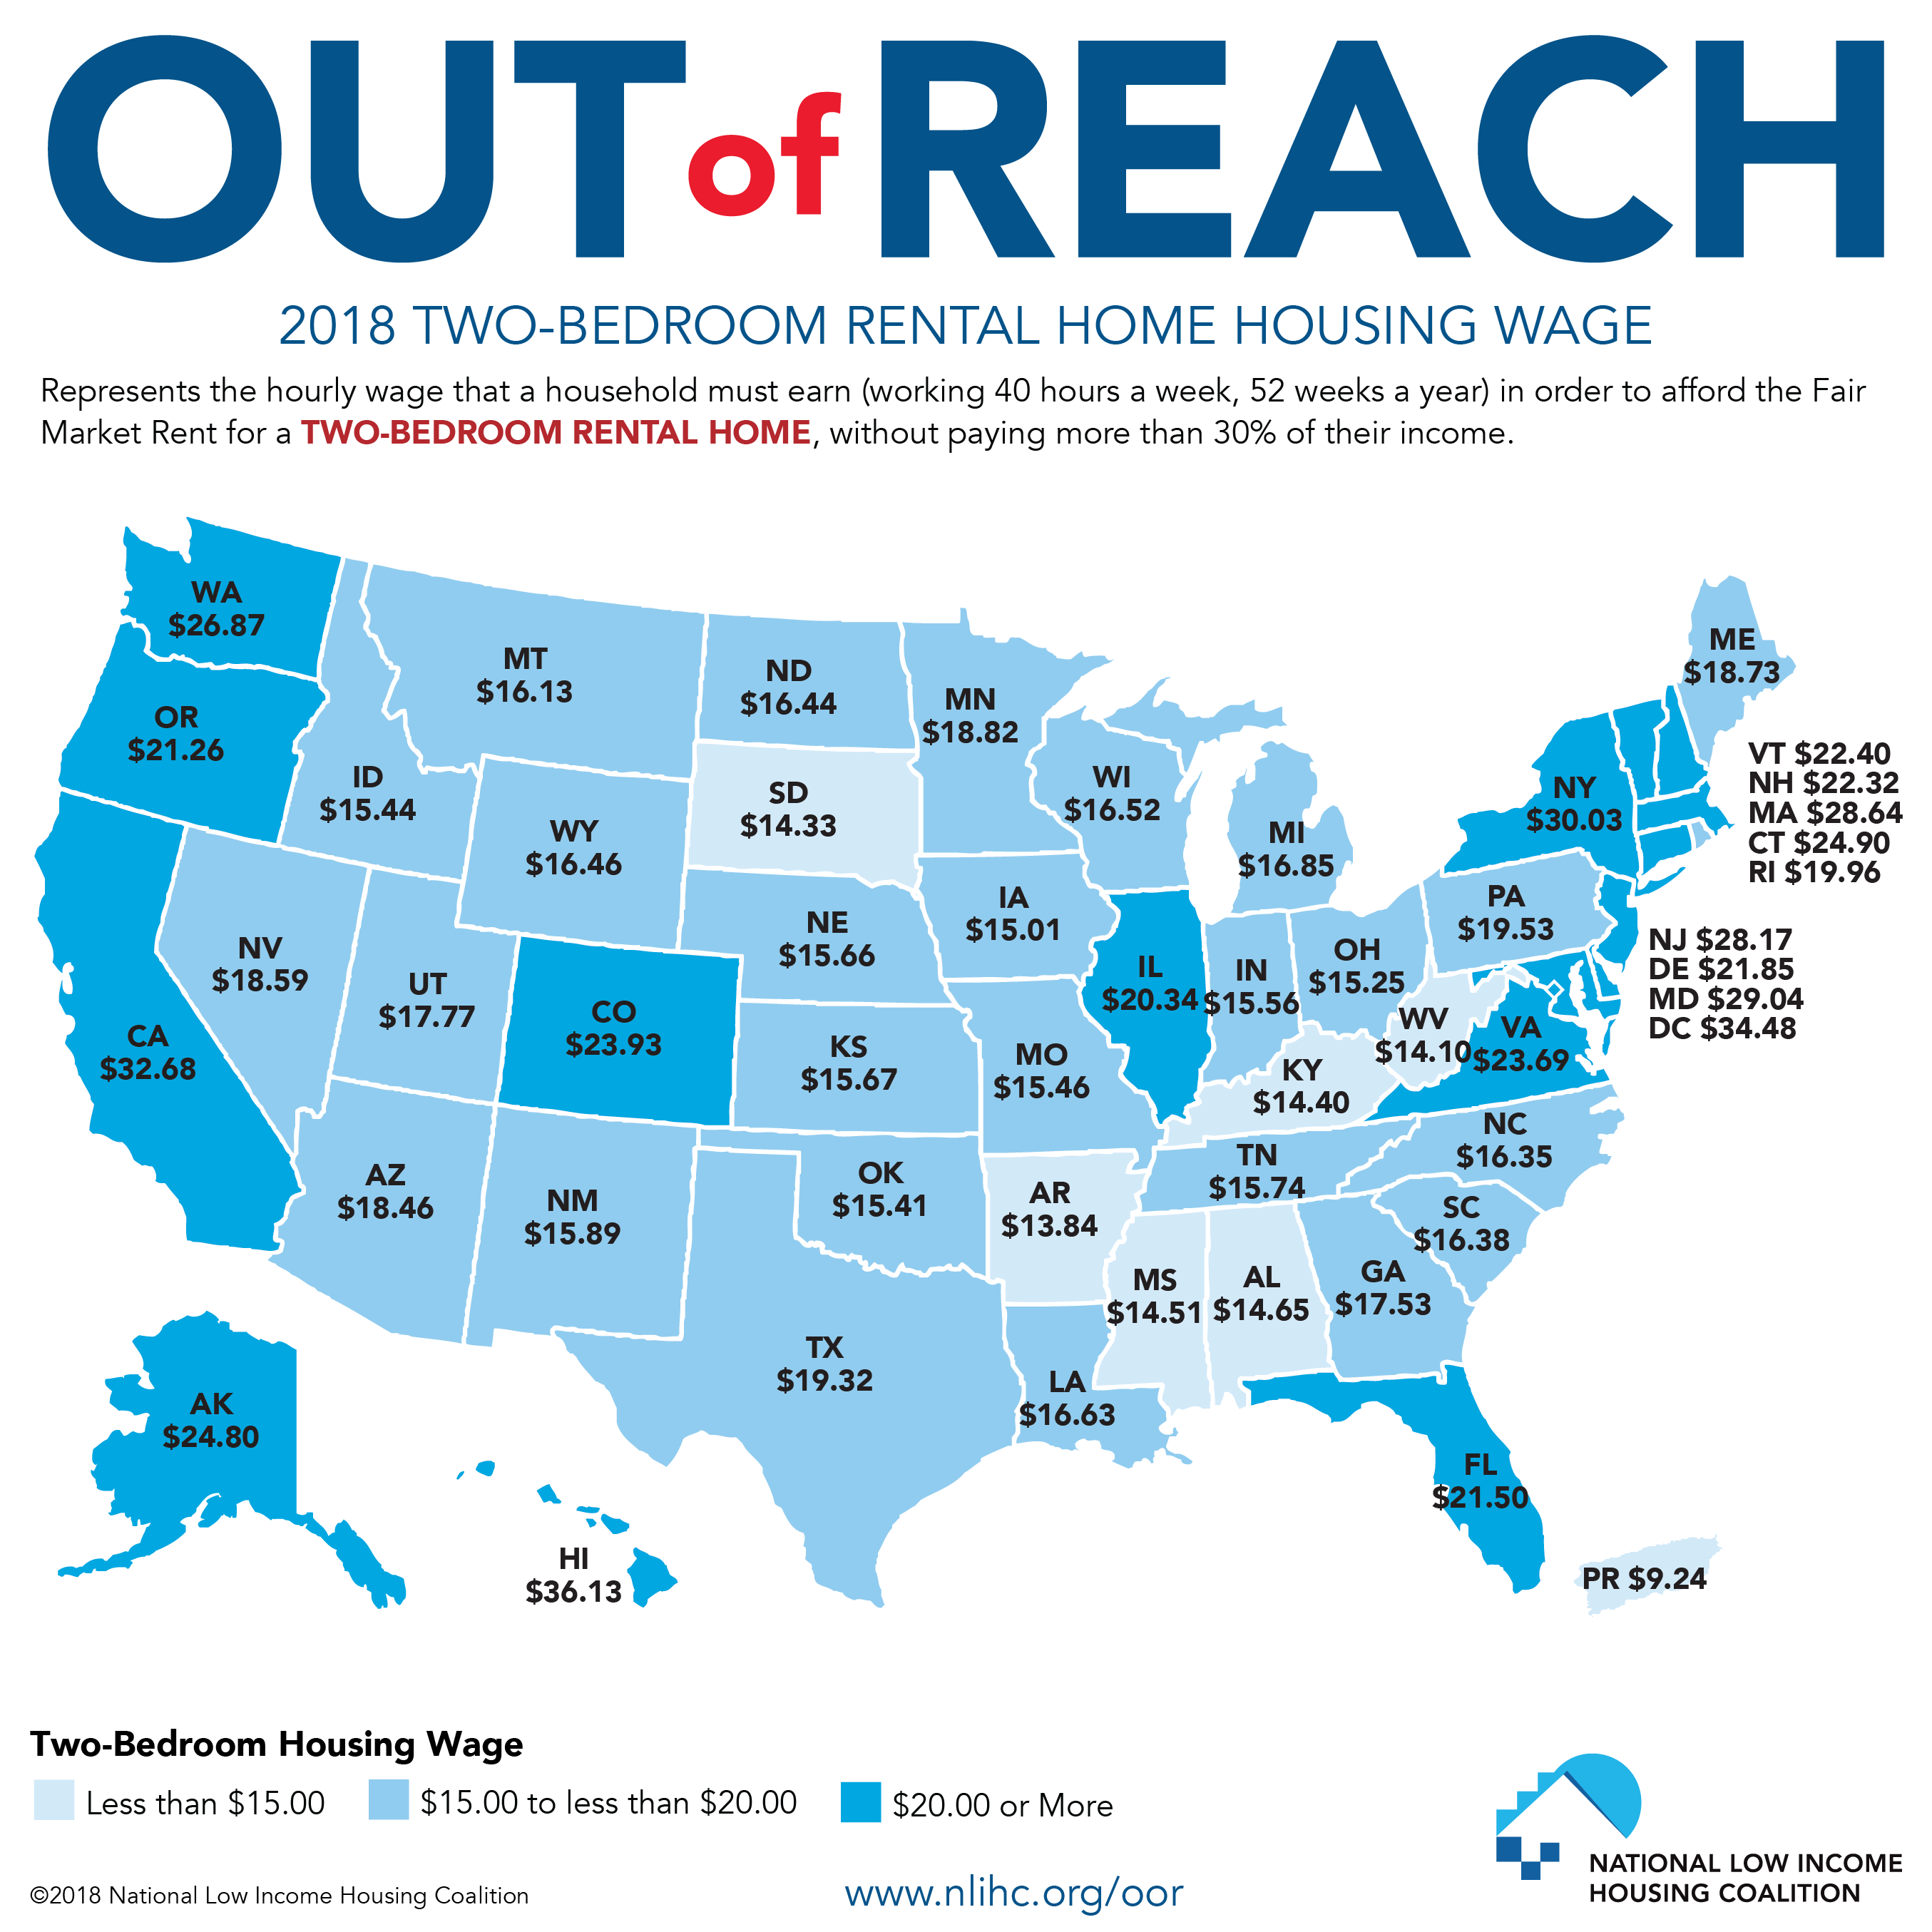 2018 Two-Bedroom Rental Unit Housing Wage